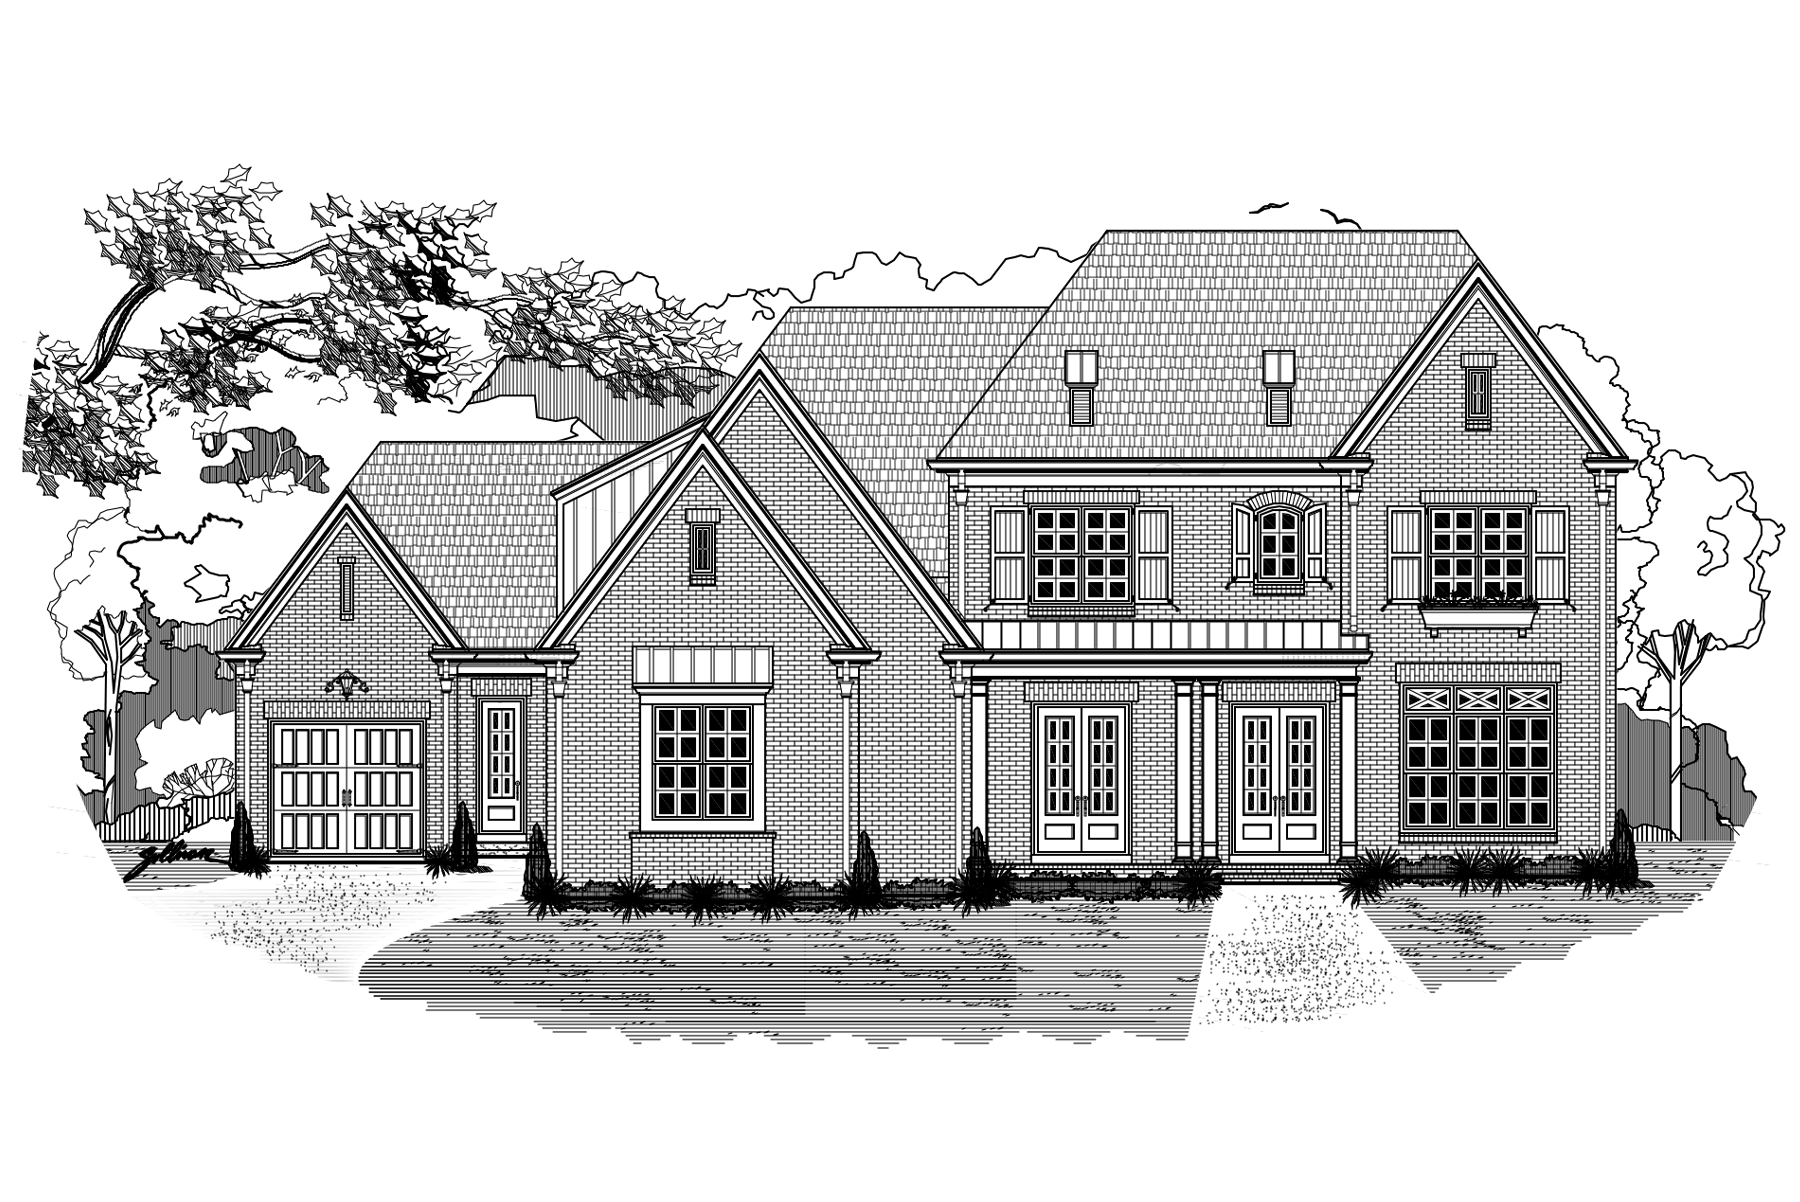 Keatswood New Home Plan